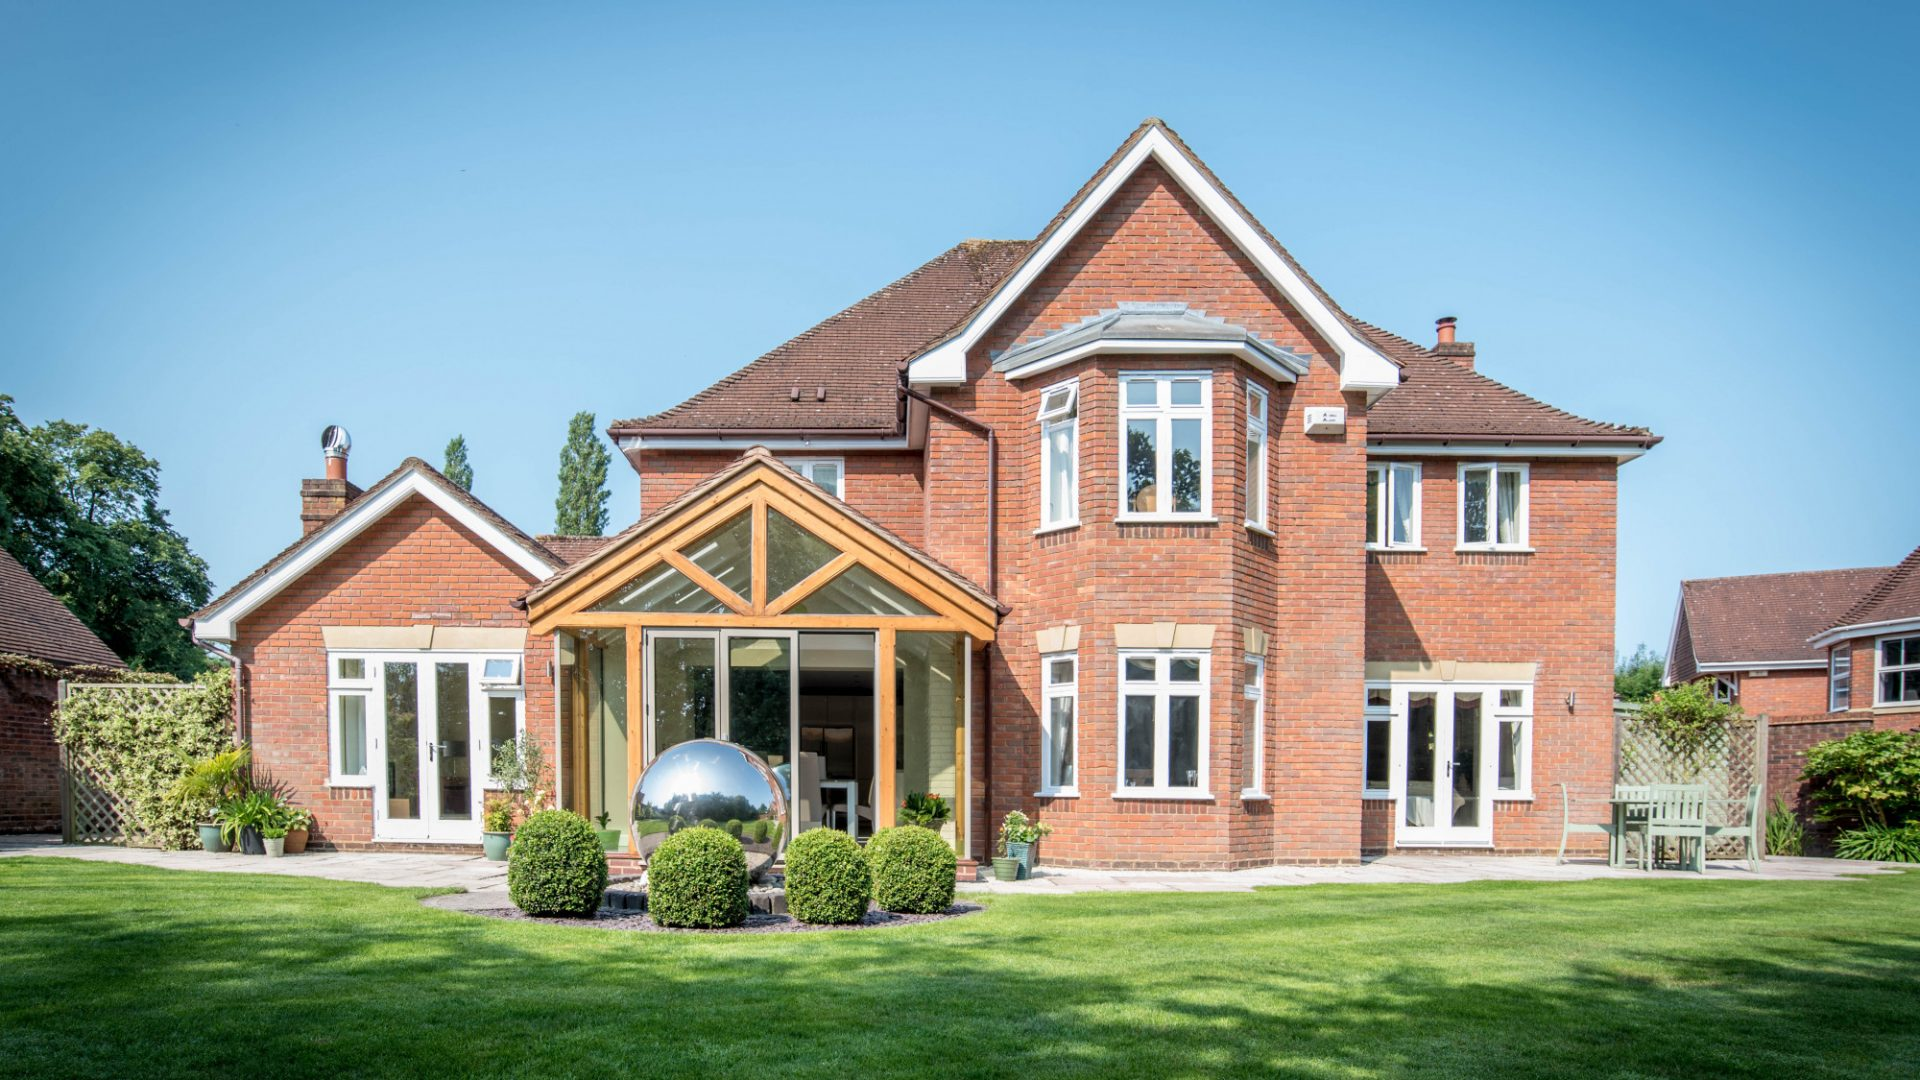 Journeys End, Solihull for sale with Mr and Mrs Clarke estate agent